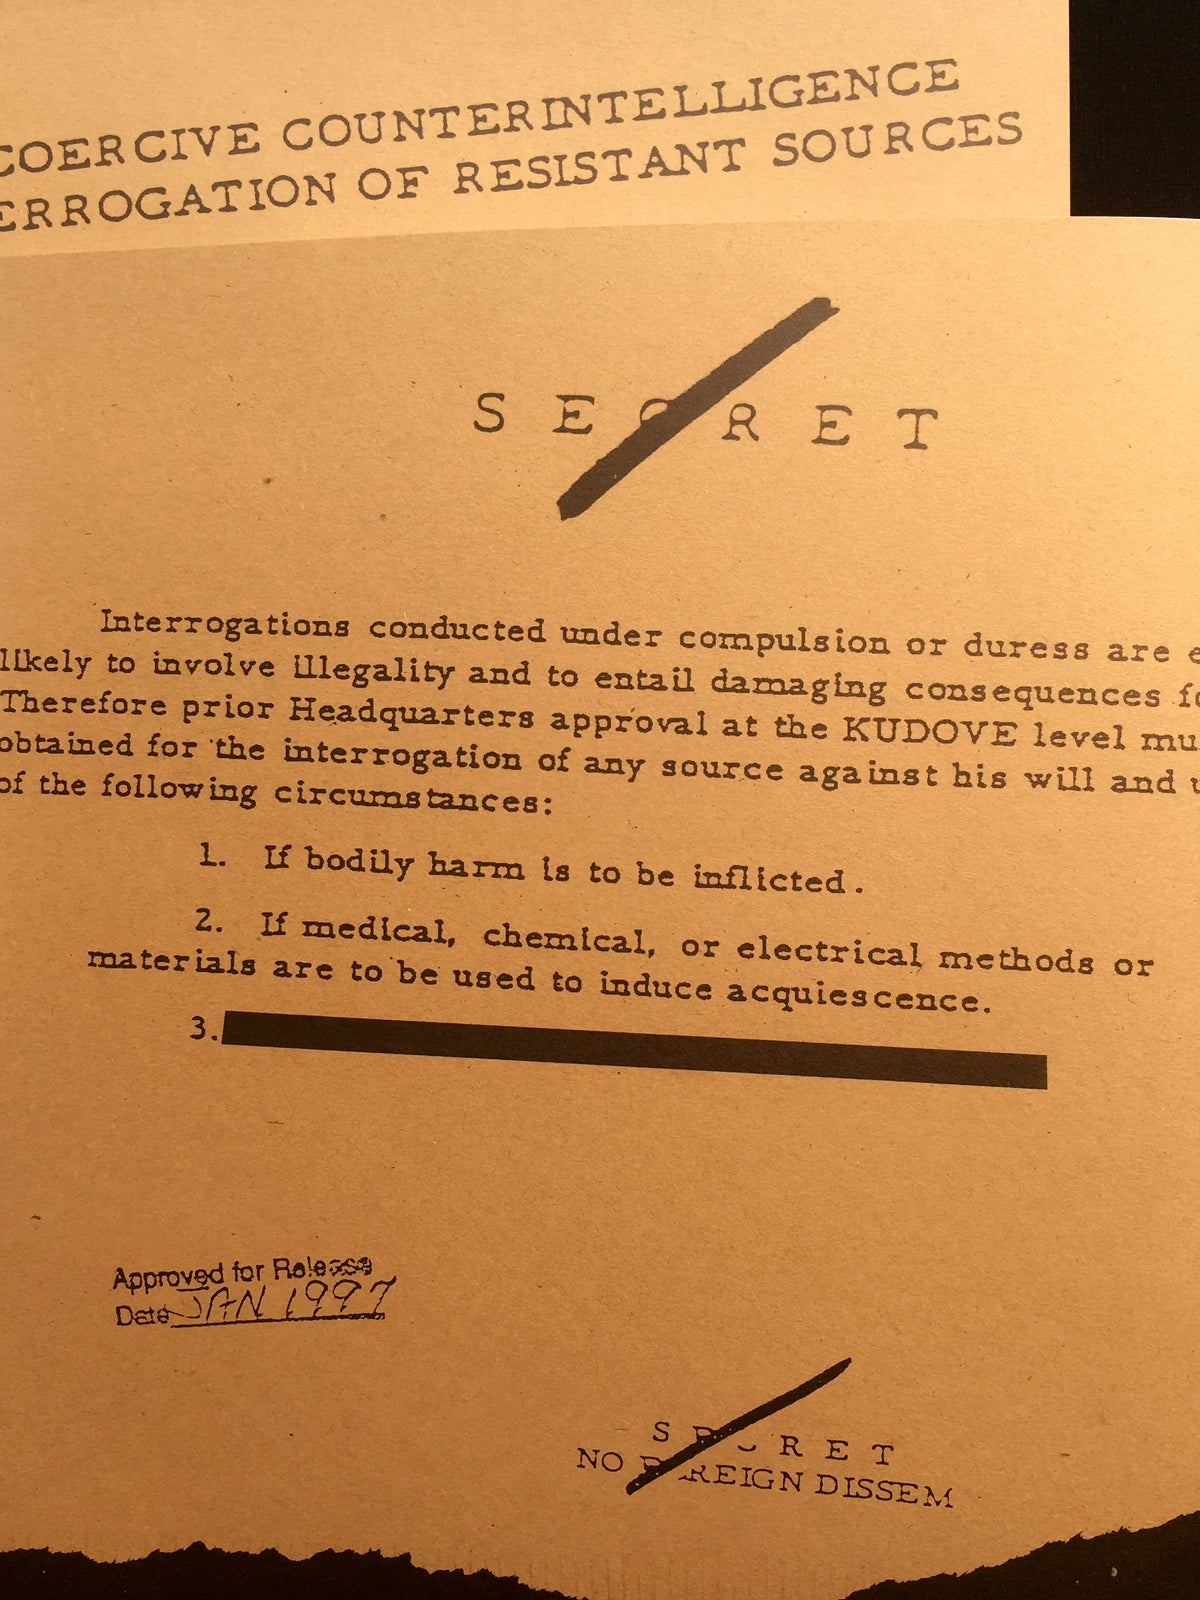 Image of InTERRORgation: The CIA's Secret Manual on Coercive Questioning